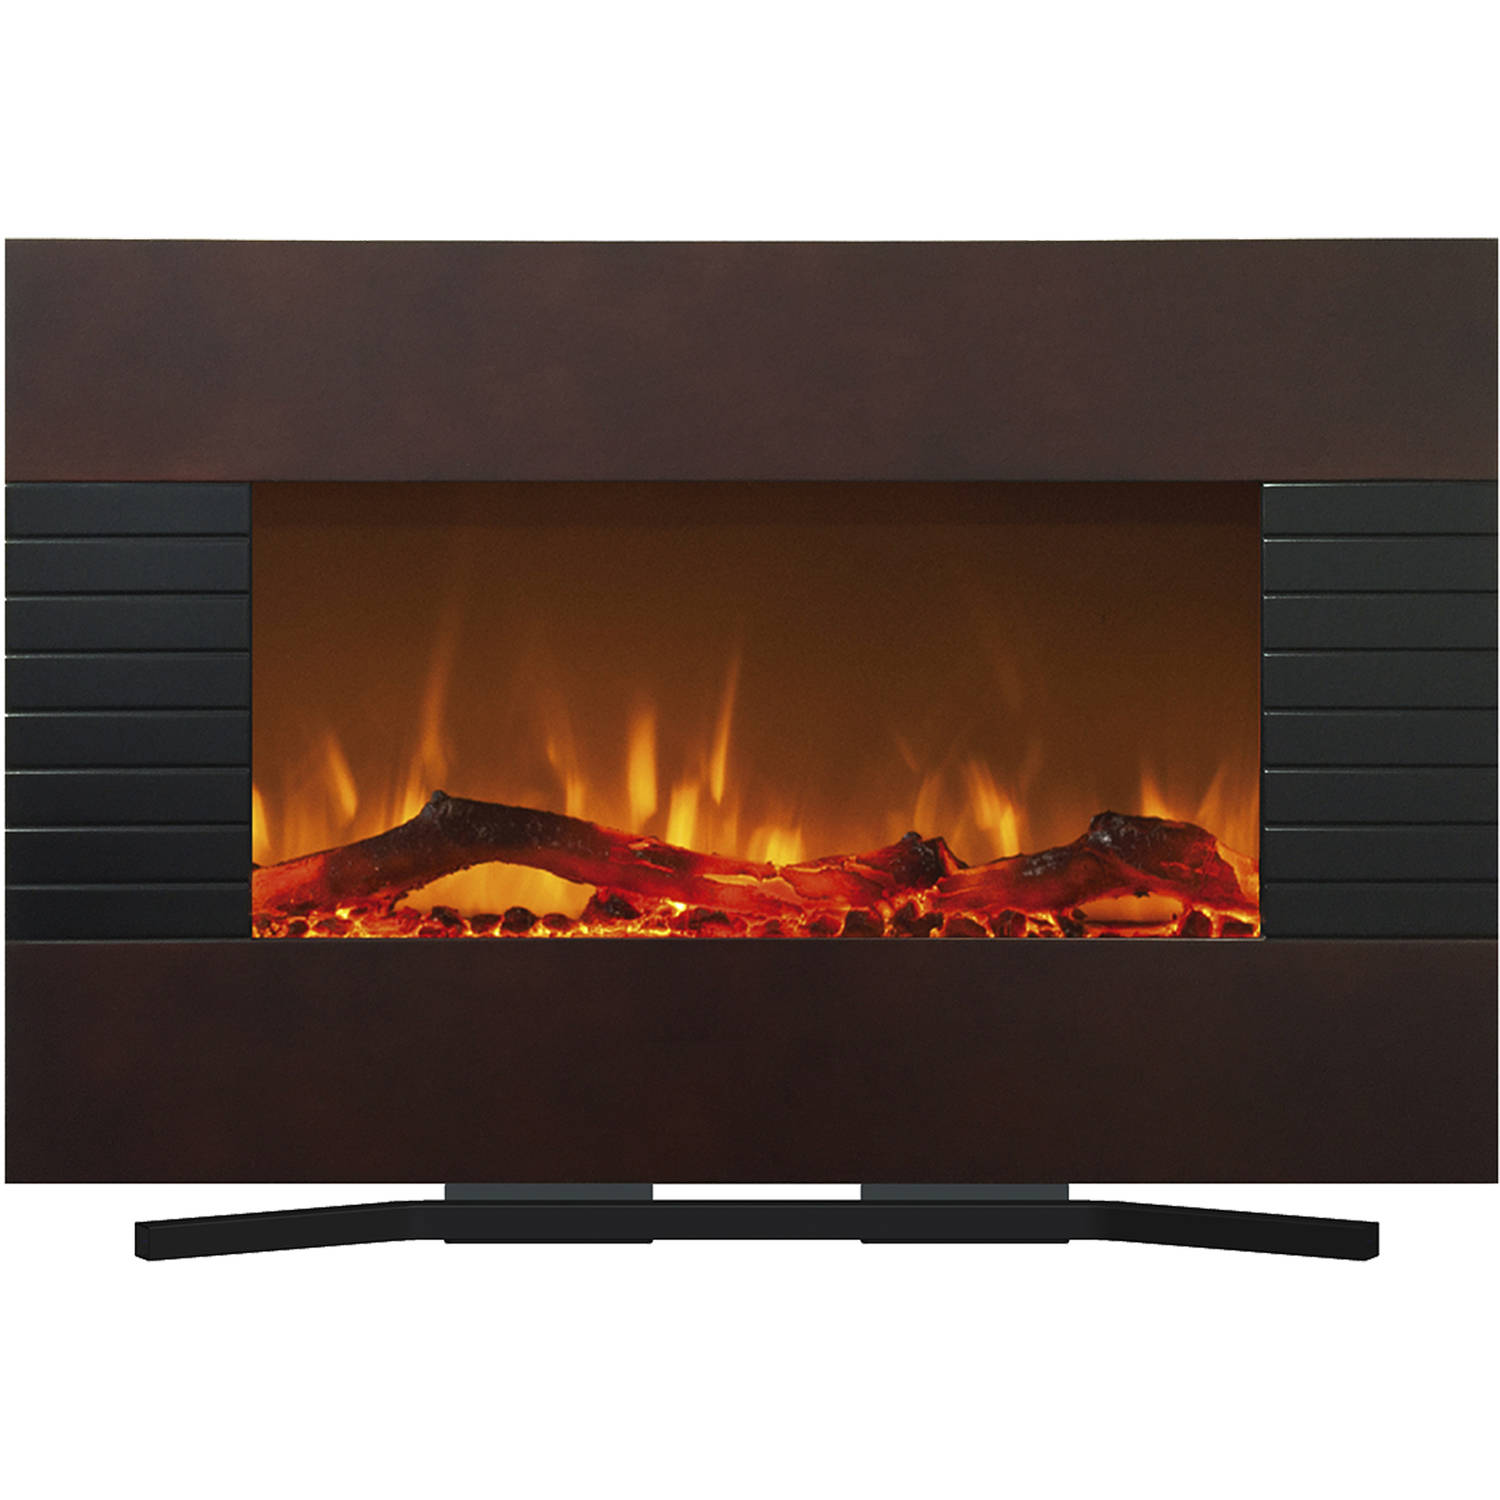 northwest fireplace reviews pdp wall improvement wayfair electric home akdy mounted ca